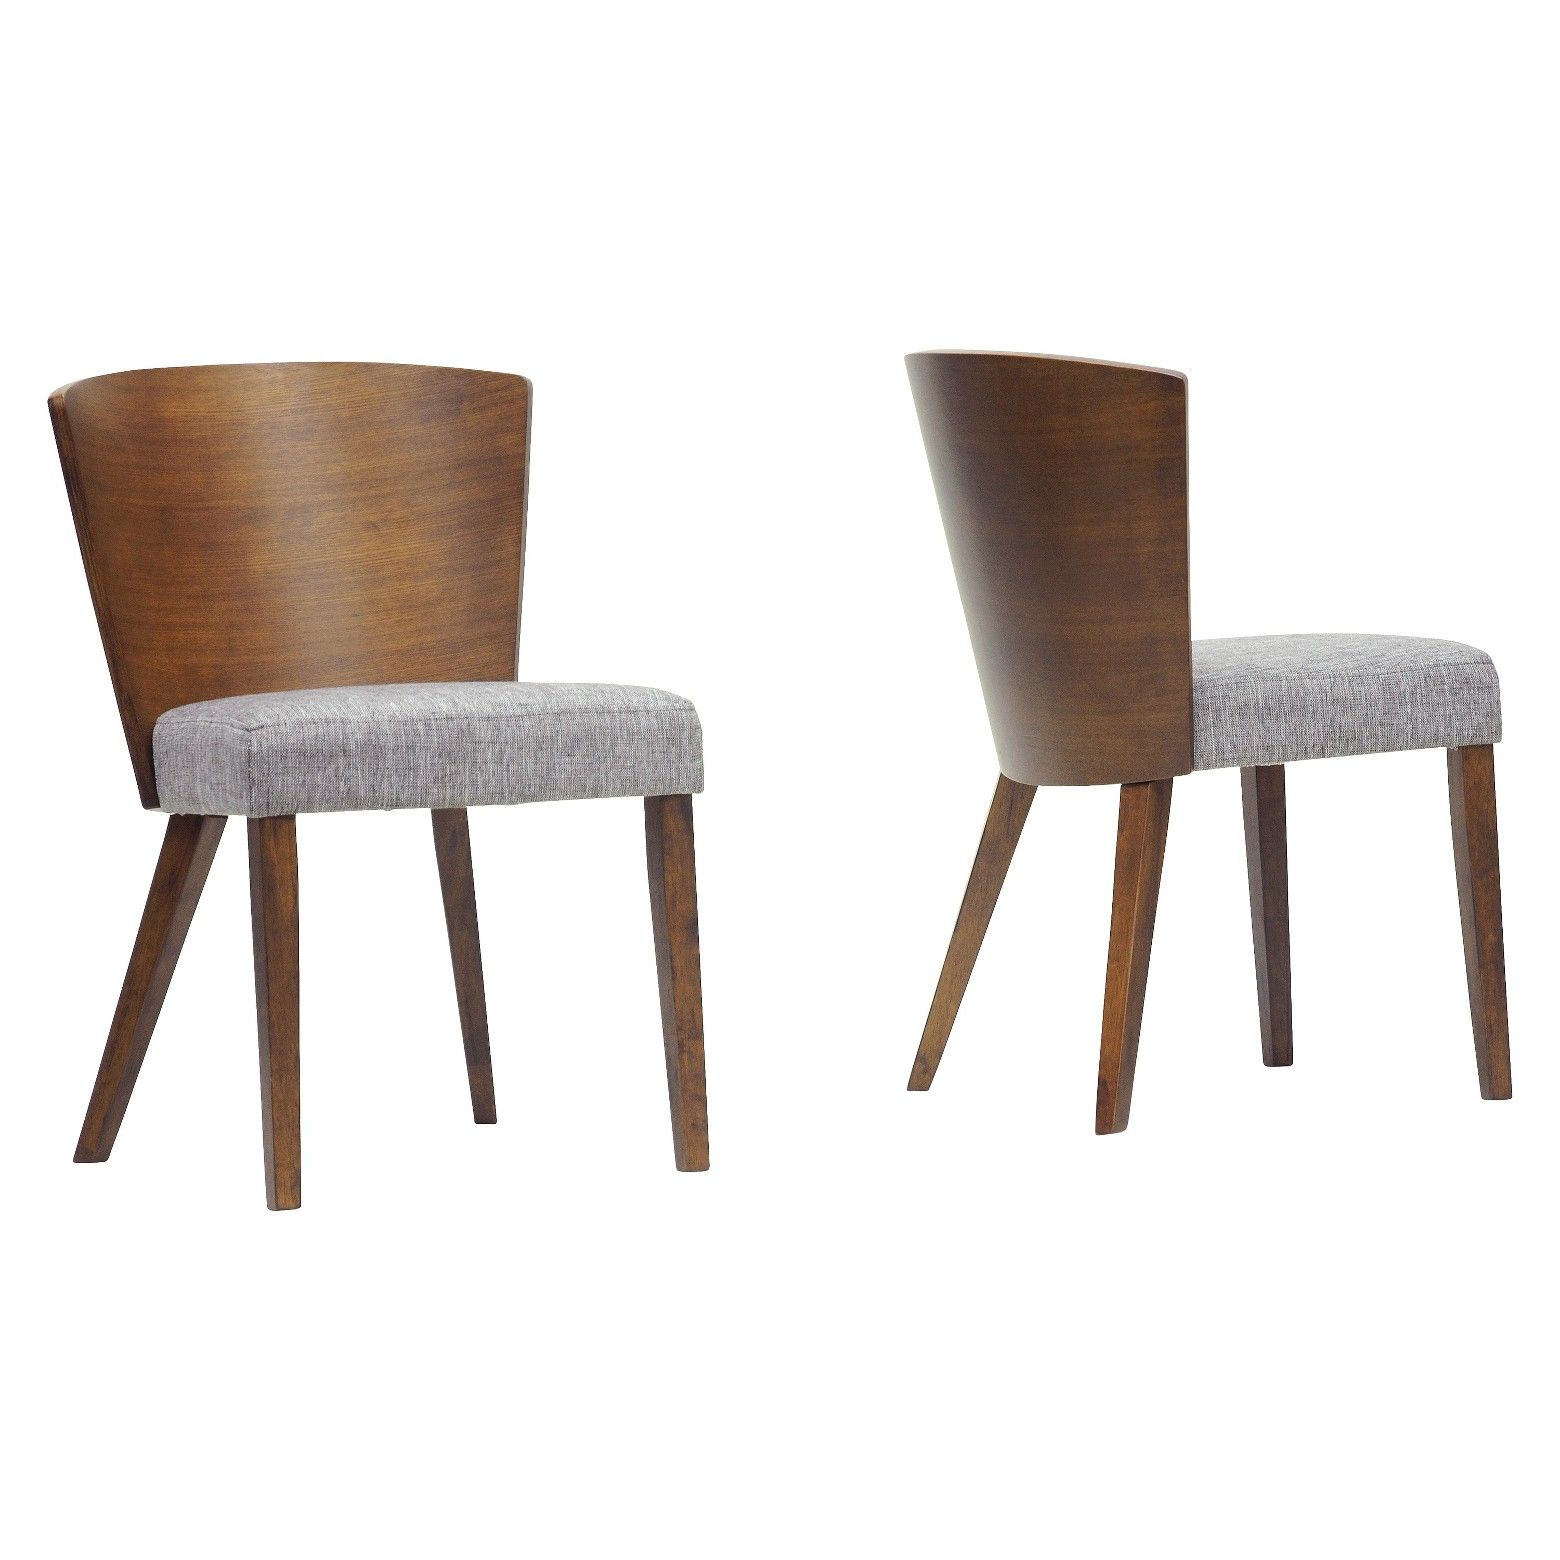 A Minimalist Dining Chair Effortlessly Dresses Up A Dining Space